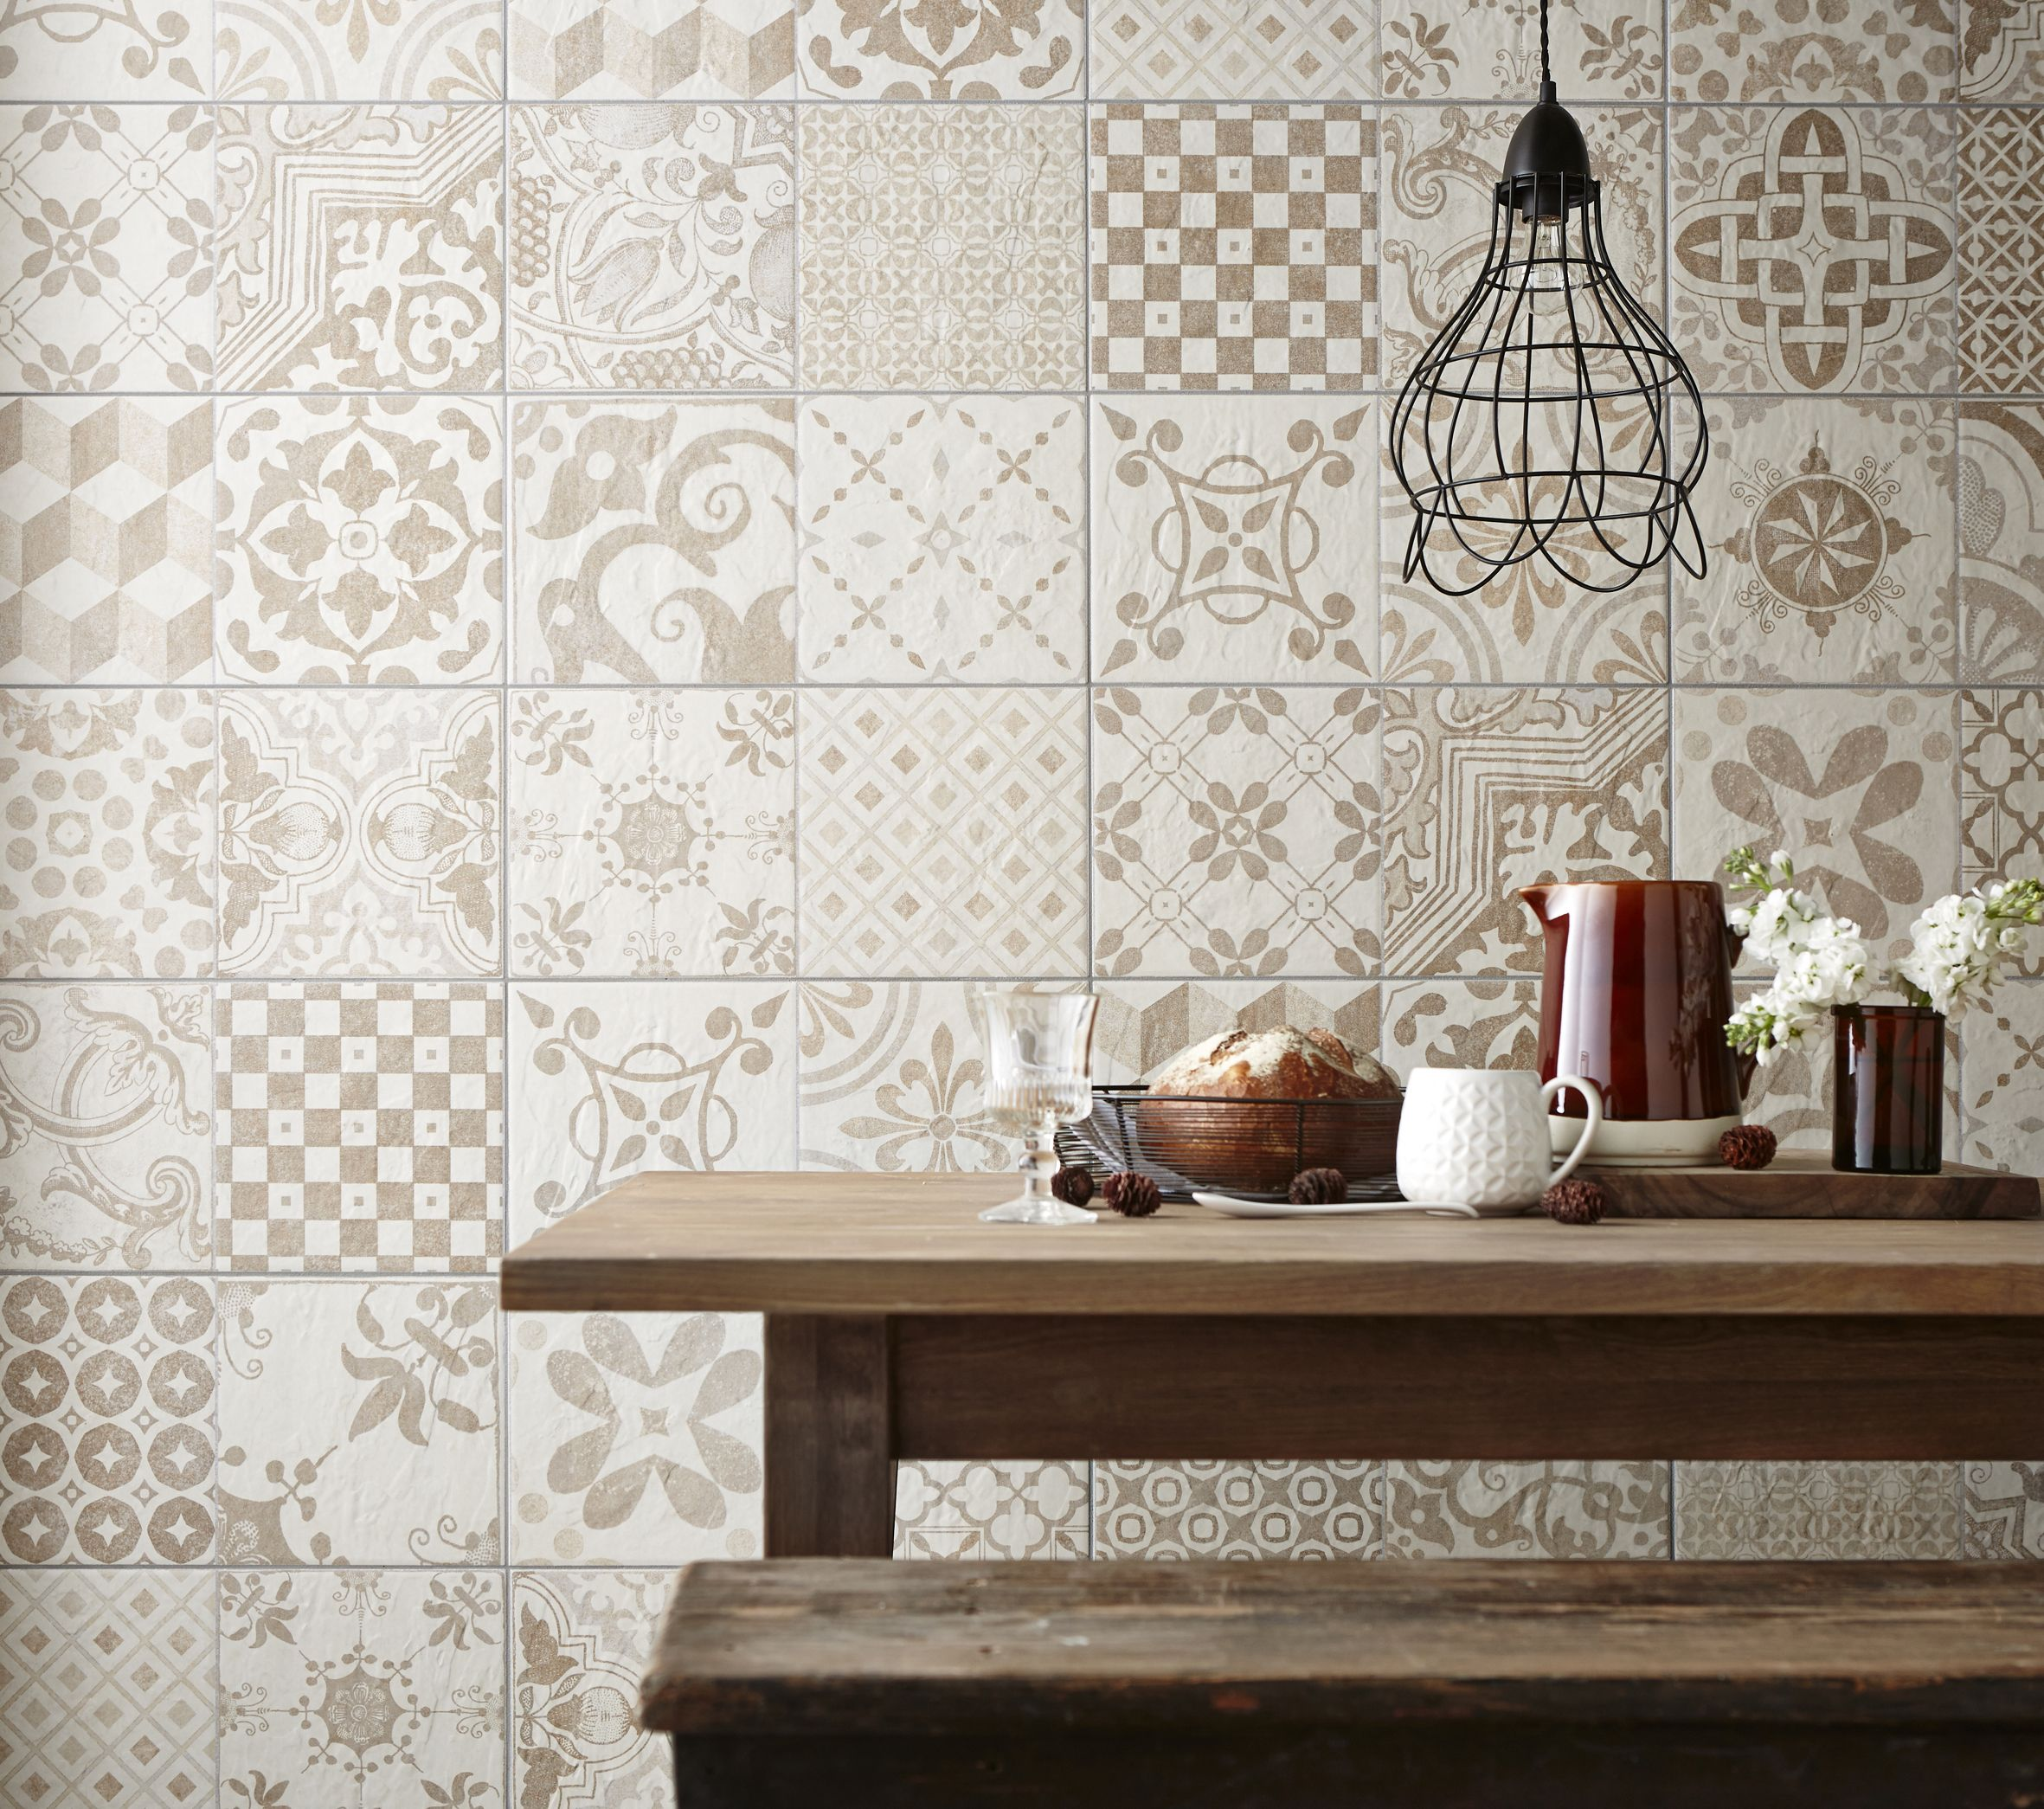 Bristol vintage wall and floor tiles only 1496 per sq m www bristol vintage wall and floor tiles only 1496 per sq m tilemountain doublecrazyfo Images